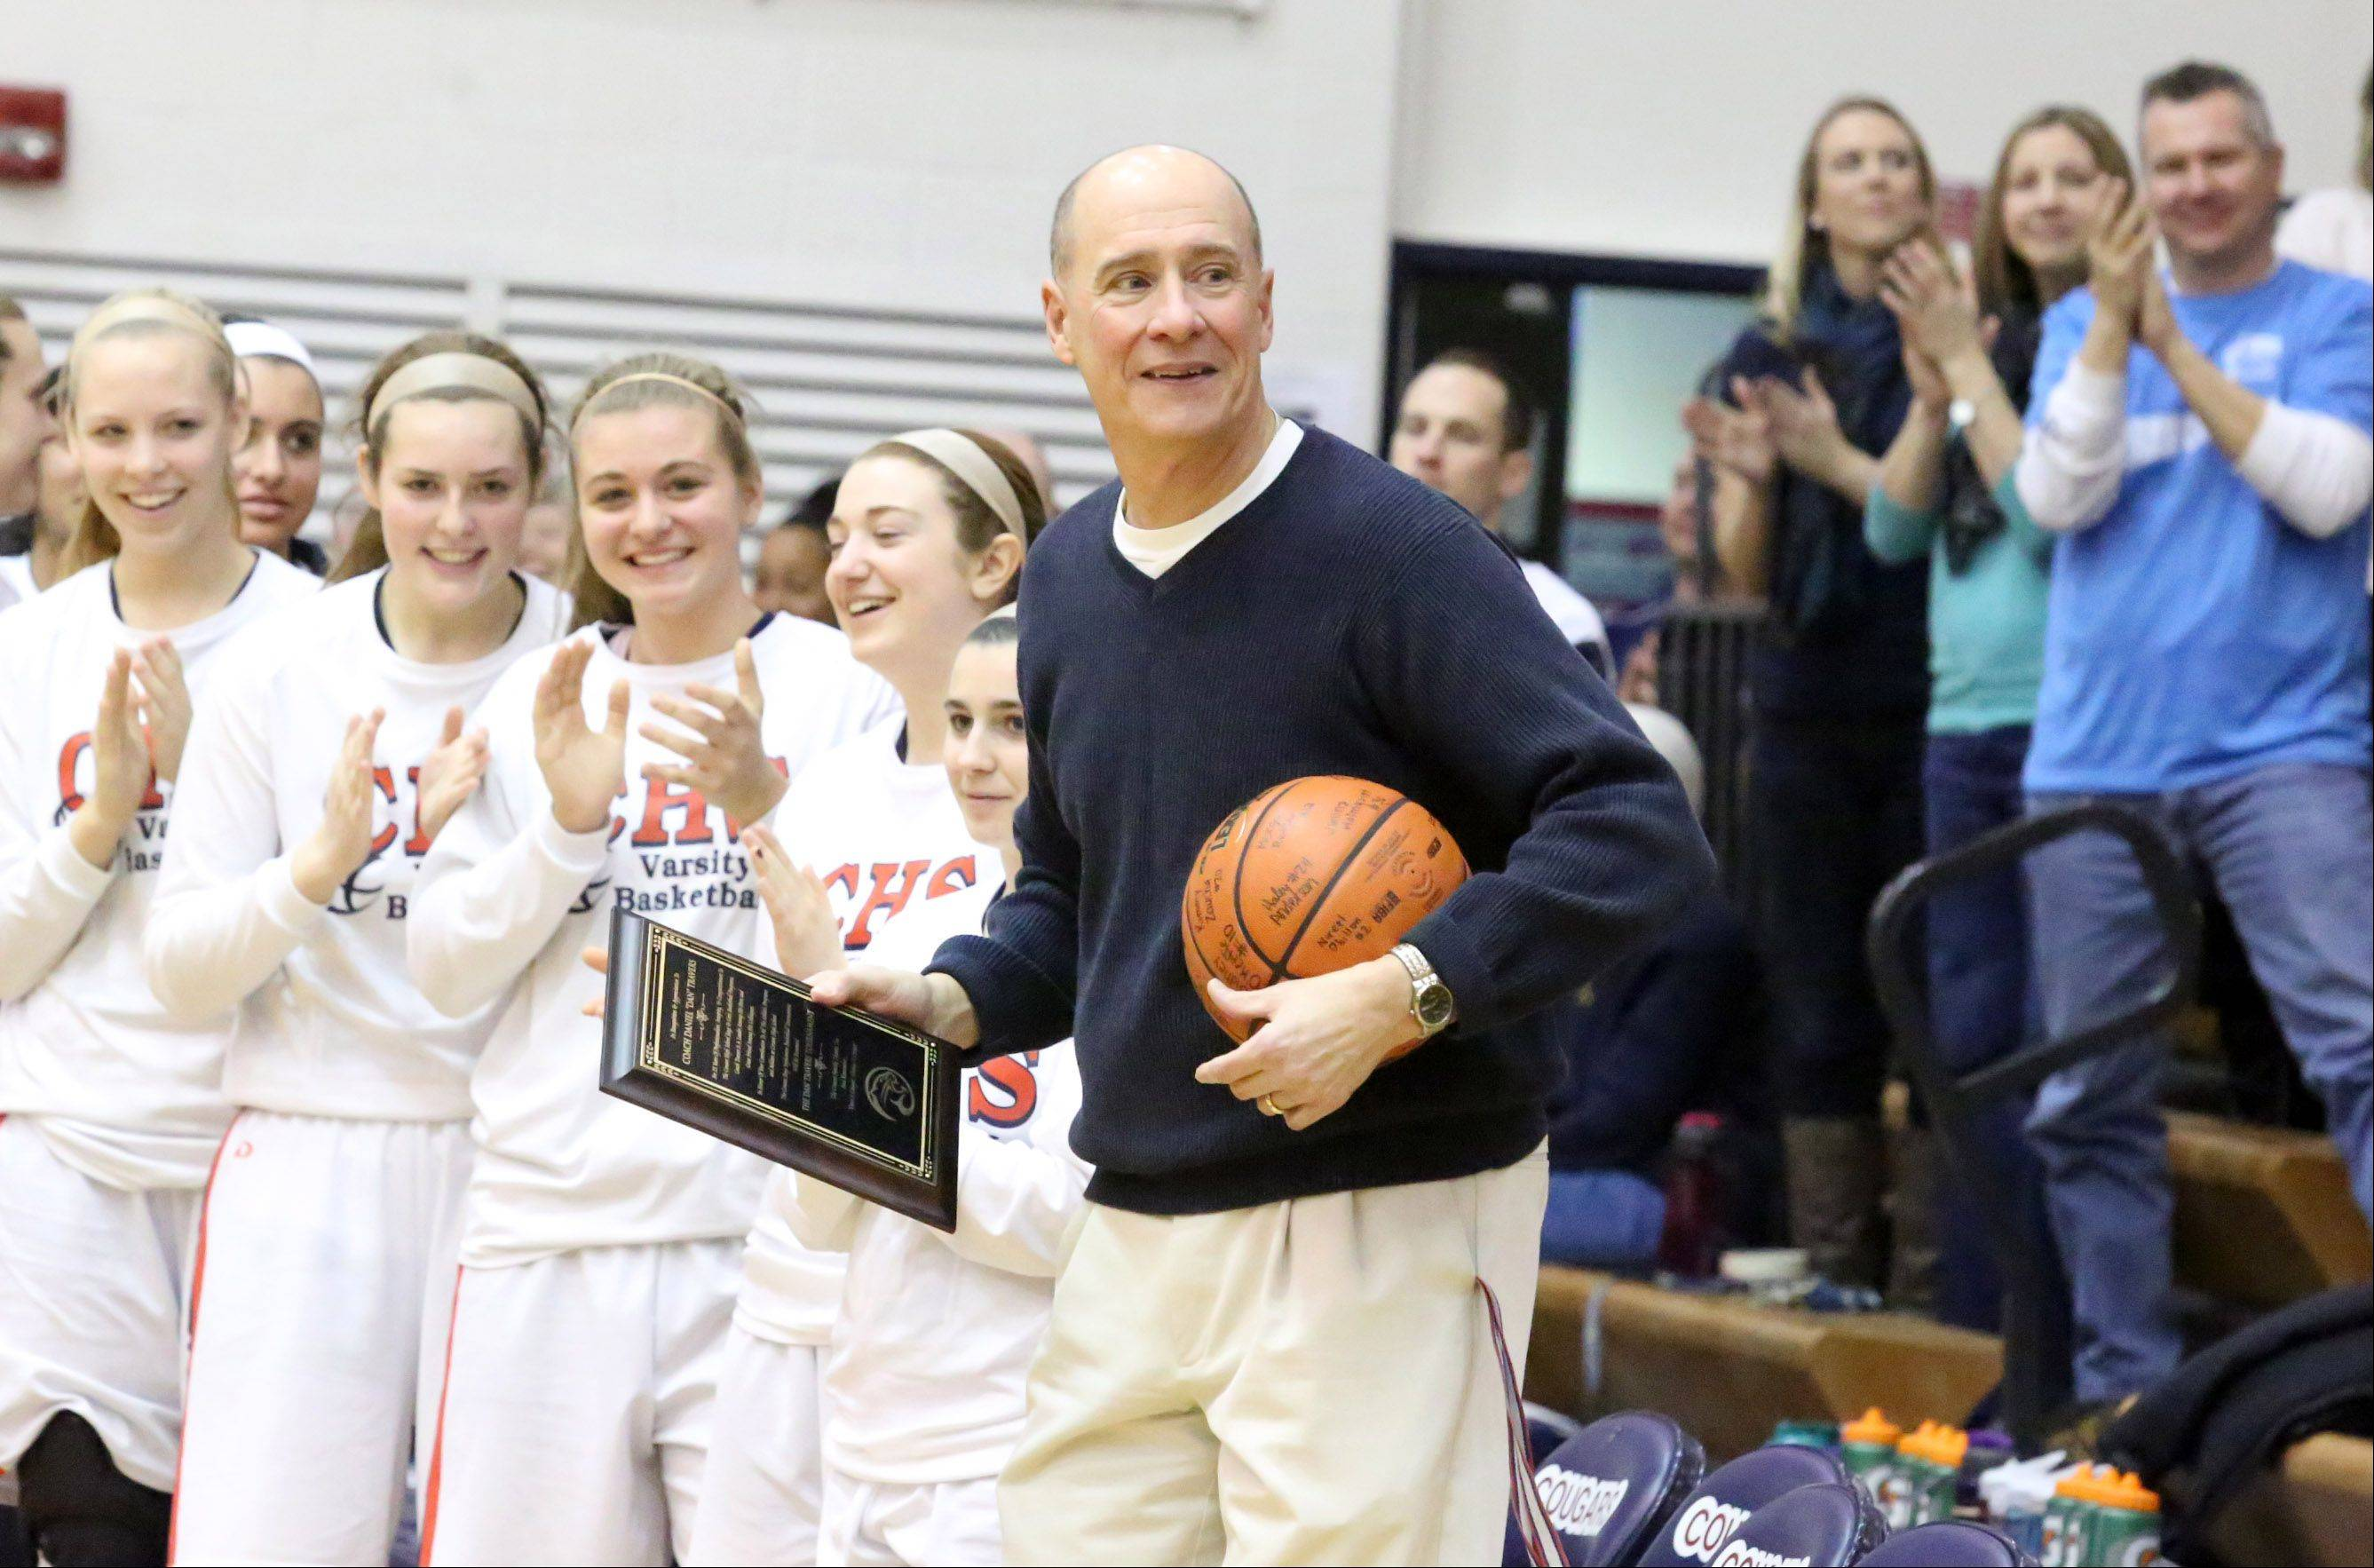 Conant girls basketball coach Dan Travers receives a standing ovation from his players and fans after receiving a plaque from athletic director John Kane on Saturday before a game with Crystal Lake South at Conant. Travers has coached high school basketball for 38 years.